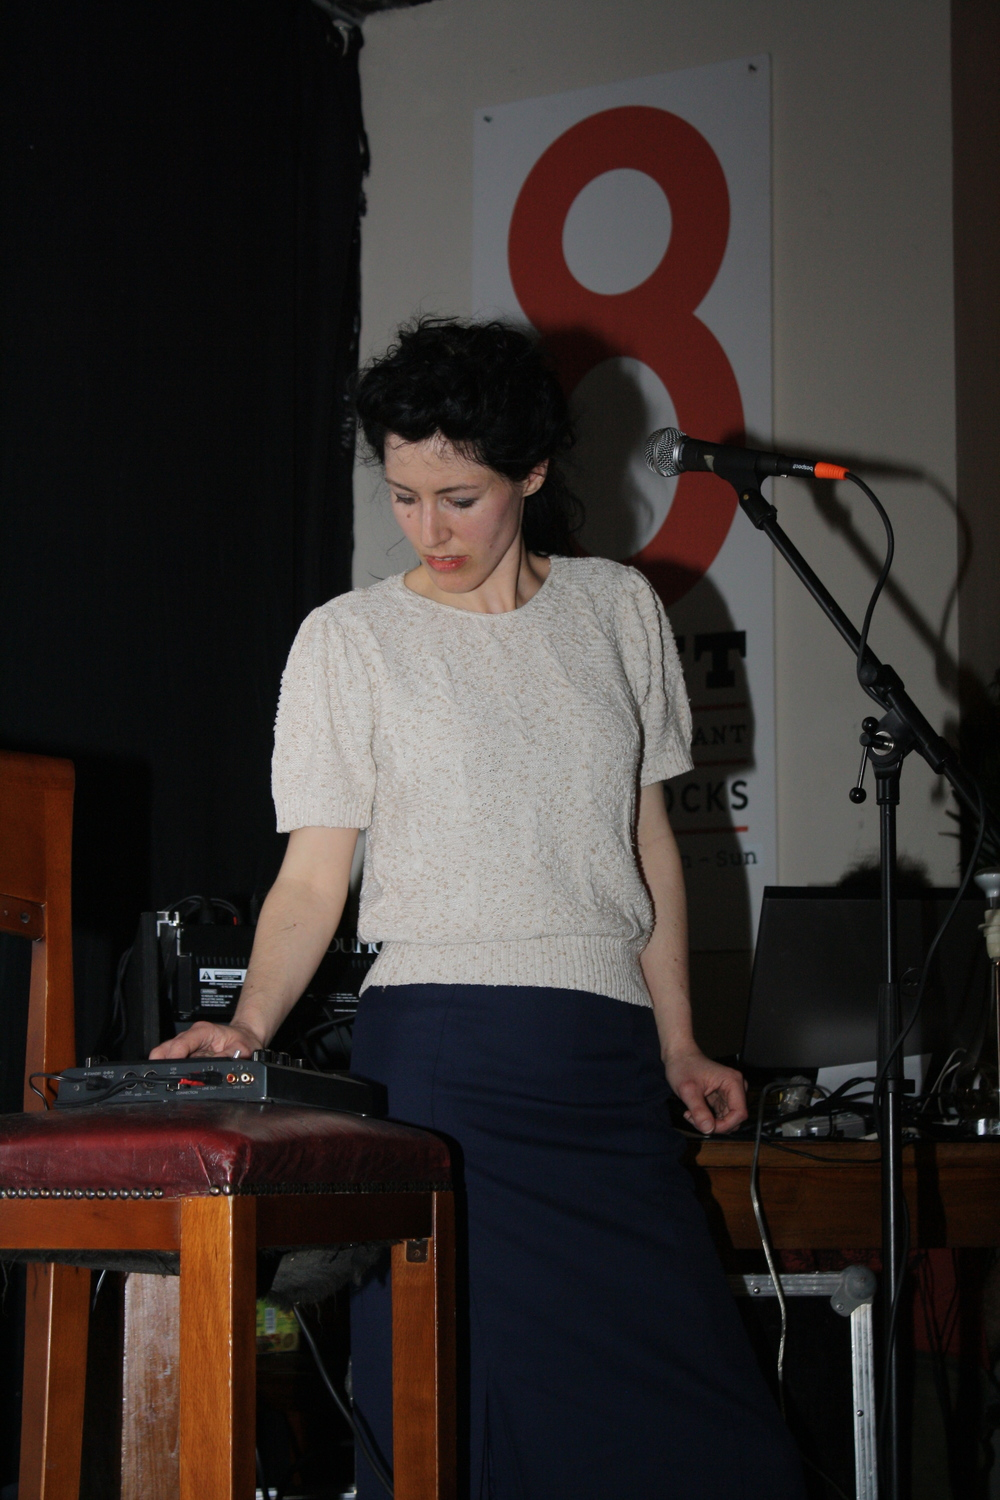 Performing at Live@8 Galway 2011